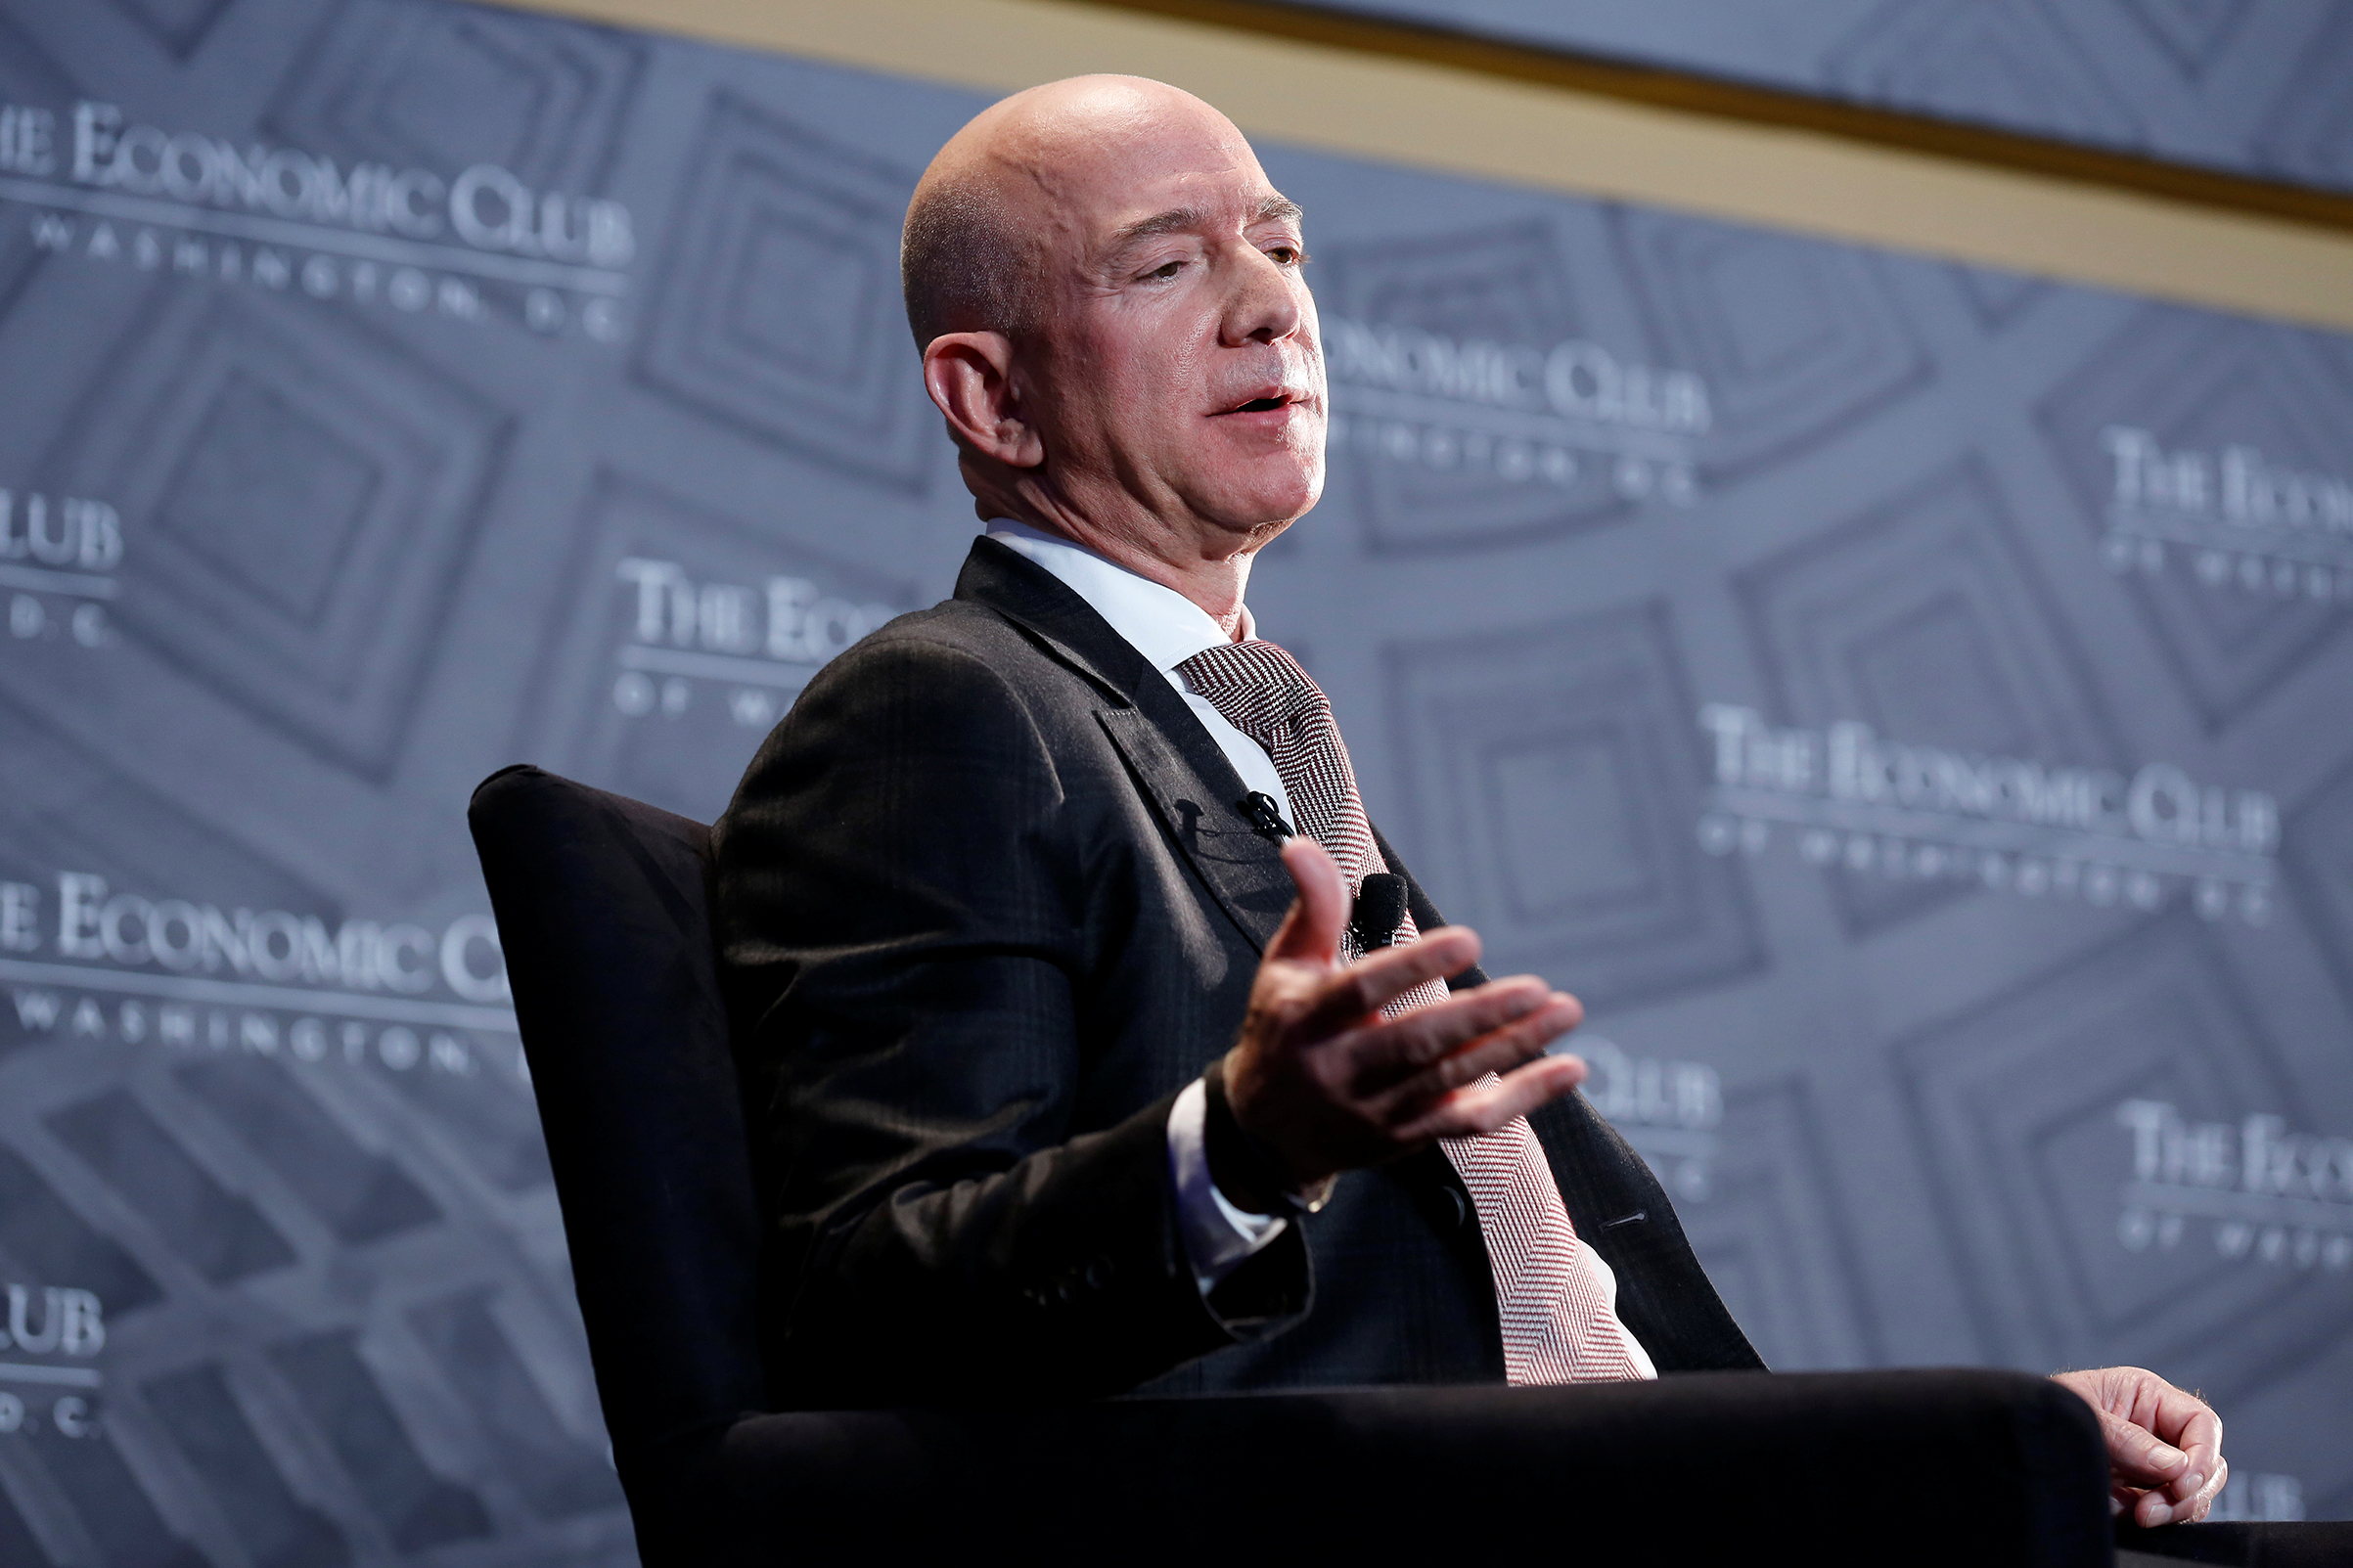 Jeff Bezos, president and CEO of Amazon and owner of The Washington Post, speaks at the Economic Club of Washington DC's  Milestone Celebration Dinner  in Washington, U.S., September 13, 2018.